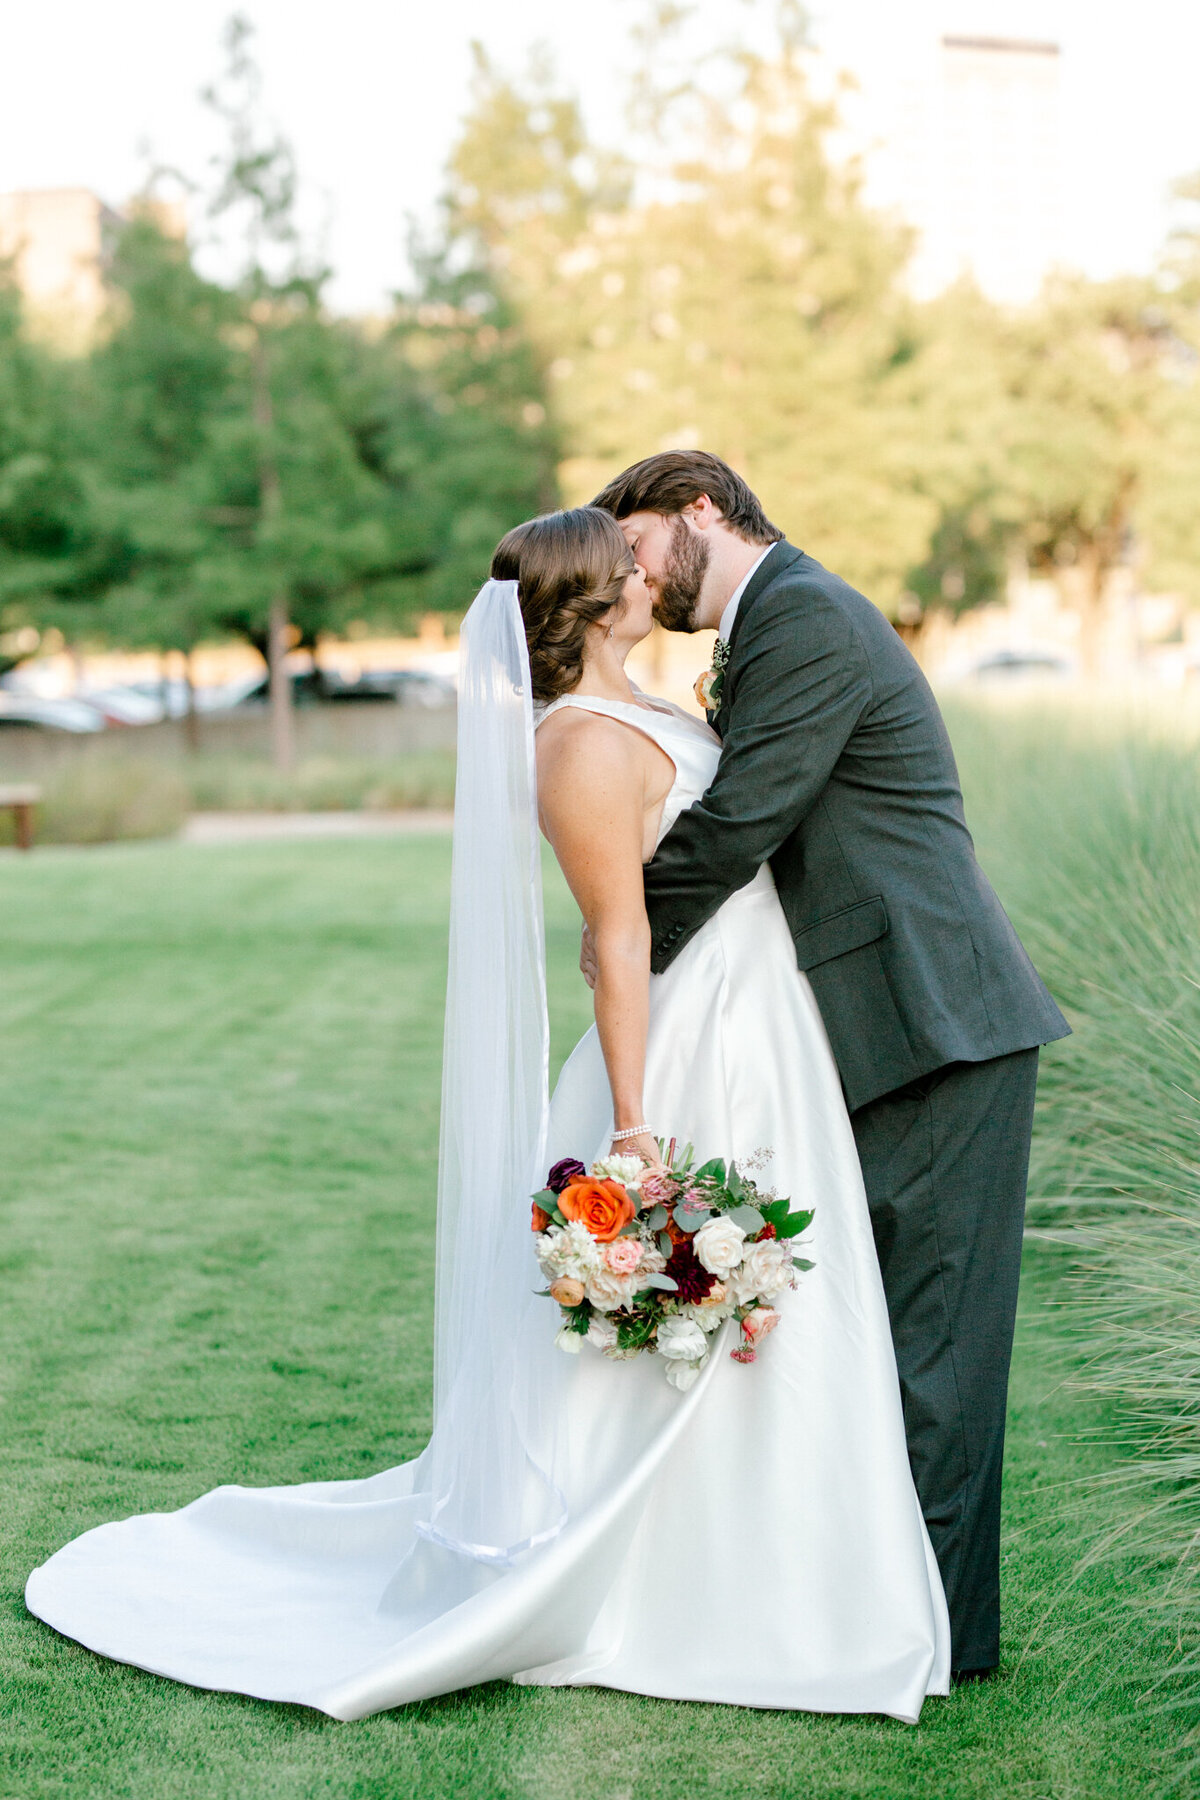 Kaylee & Michael's Wedding at Watermark Community Church | Dallas Wedding Photographer | Sami Kathryn Photography-7